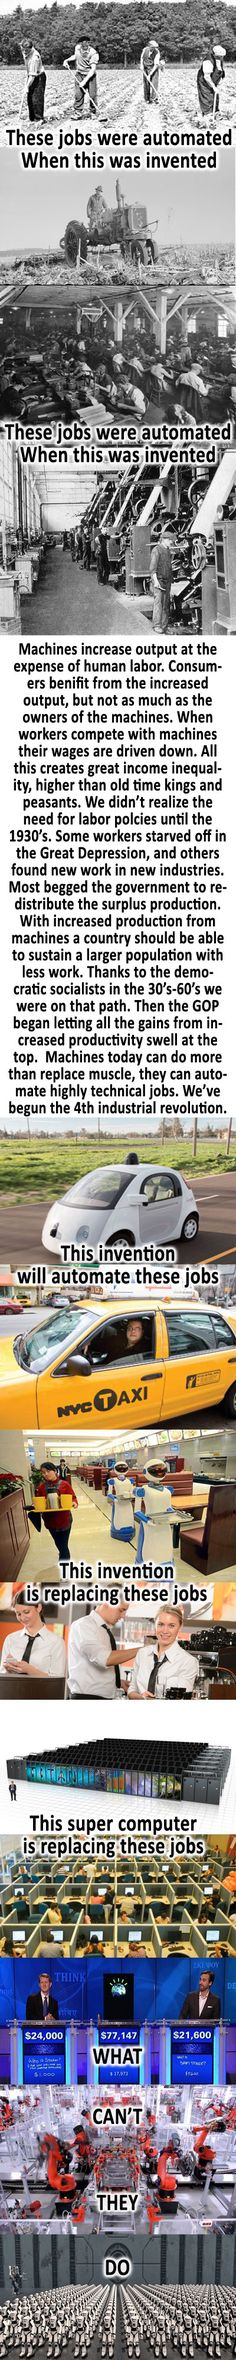 Competing with Machines Technological Unemployment, 4 Industrial Revolutions, Government Spending, Great Depression, Socialism, Bernie Sanders, Economics, Productivity, Wealth